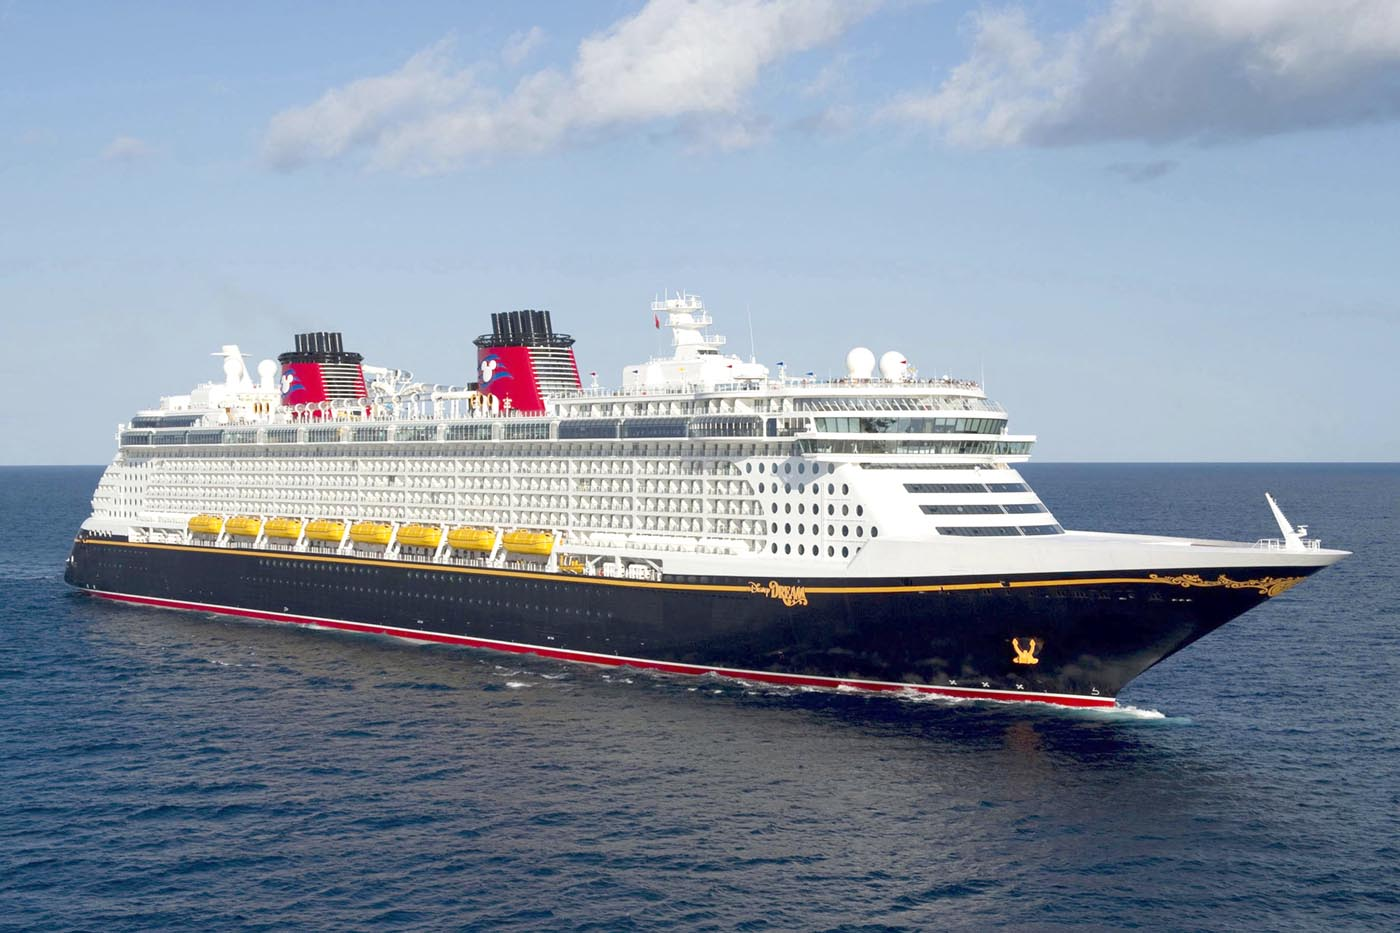 Disney Dream: O novo navio da Disney